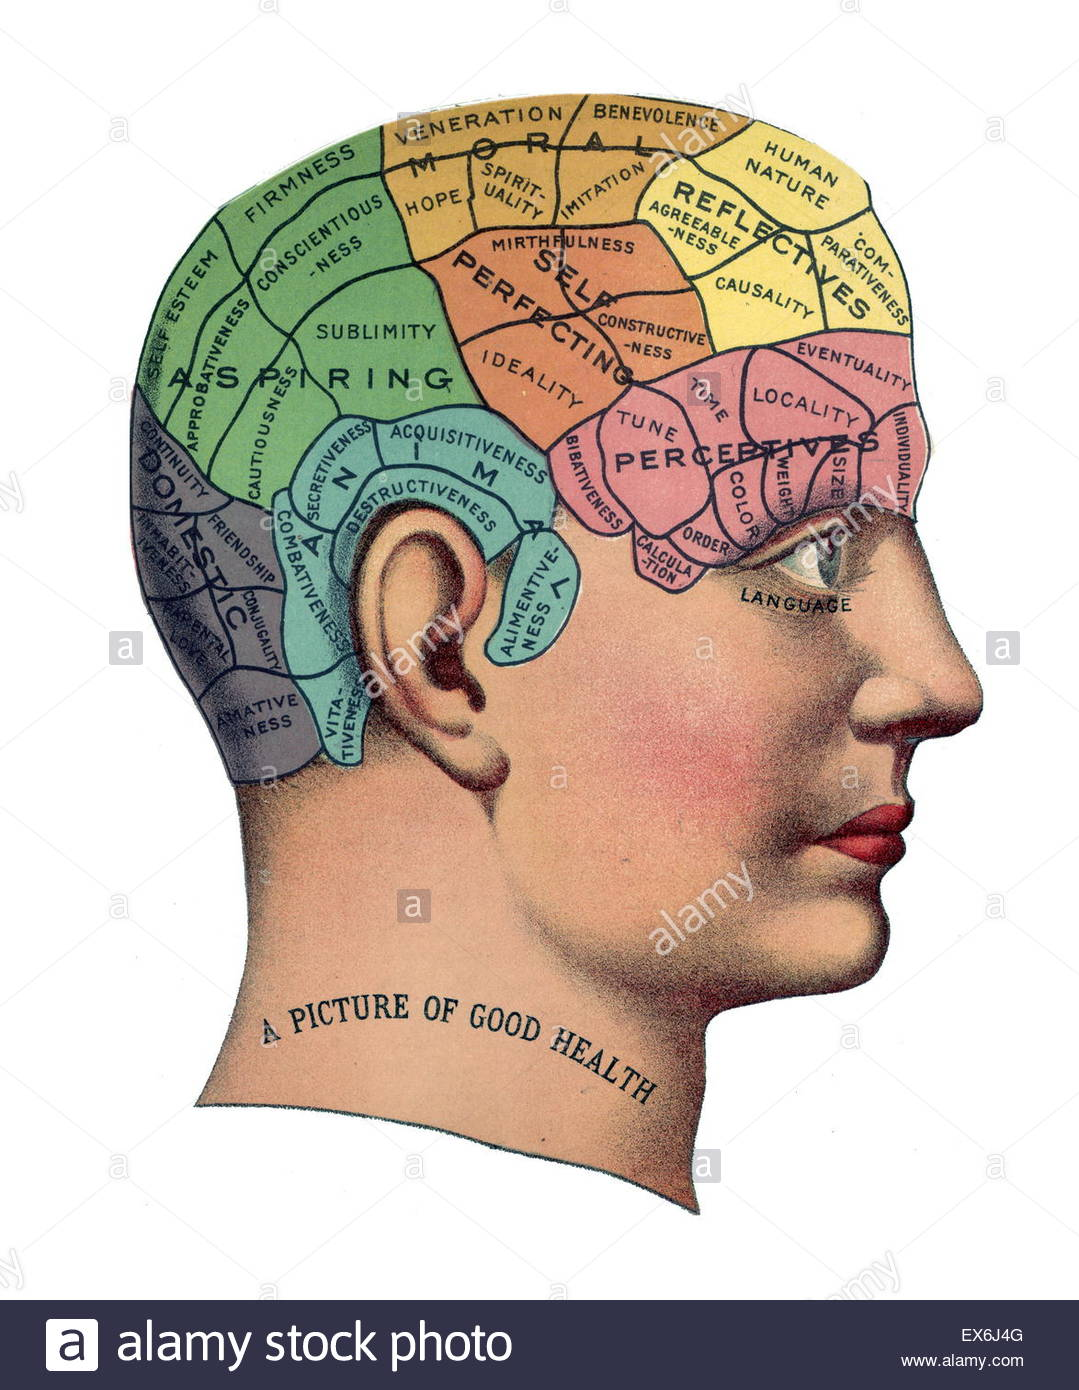 SAGE The Pseudoscience of Phrenology in Victorian Presque Isle